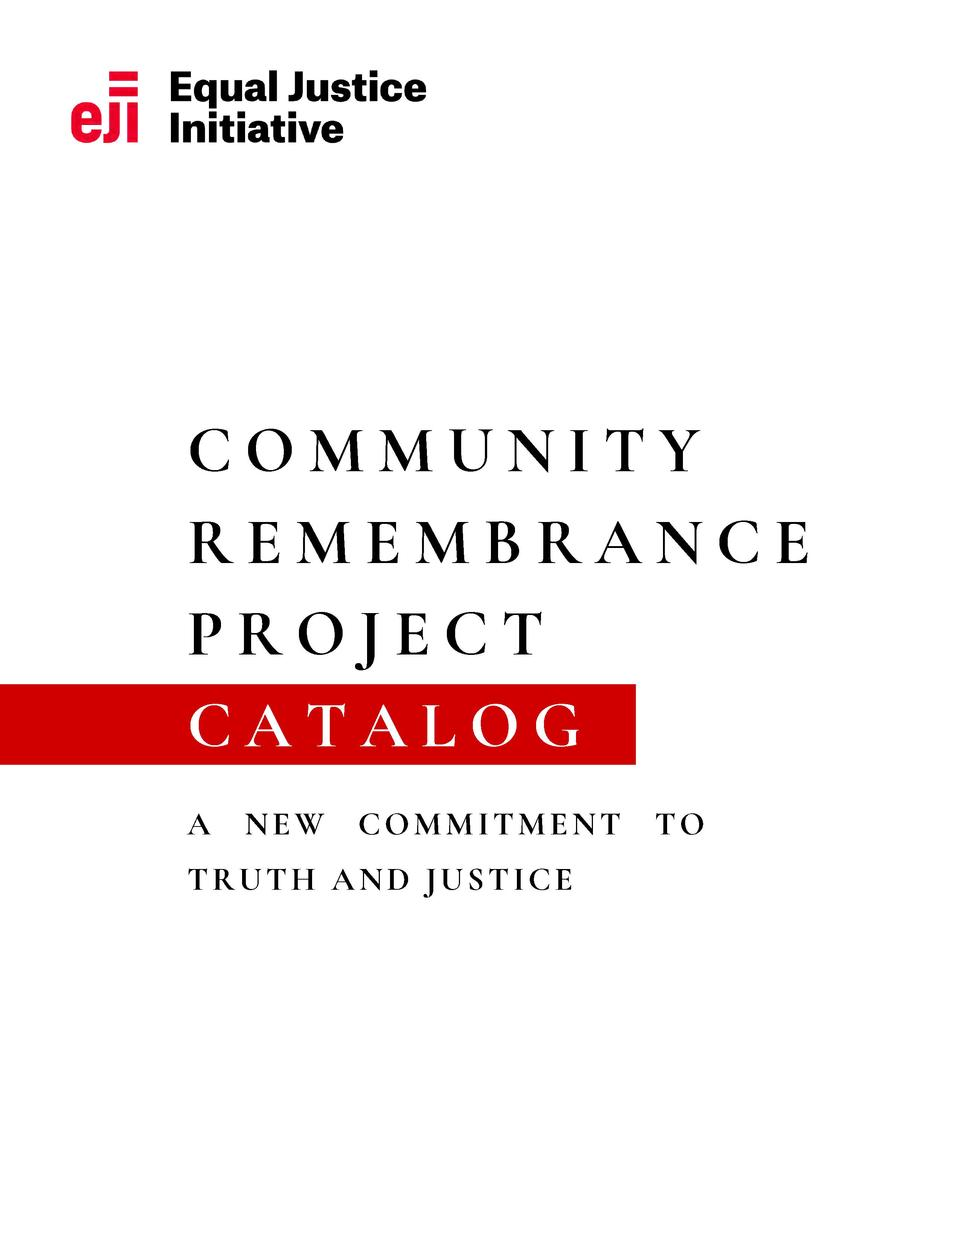 COMMUNITY REMEMBRANCE PROJECT CATALOG A  NEW  COMMITMENT  TRUTH AND JUSTICE  TO